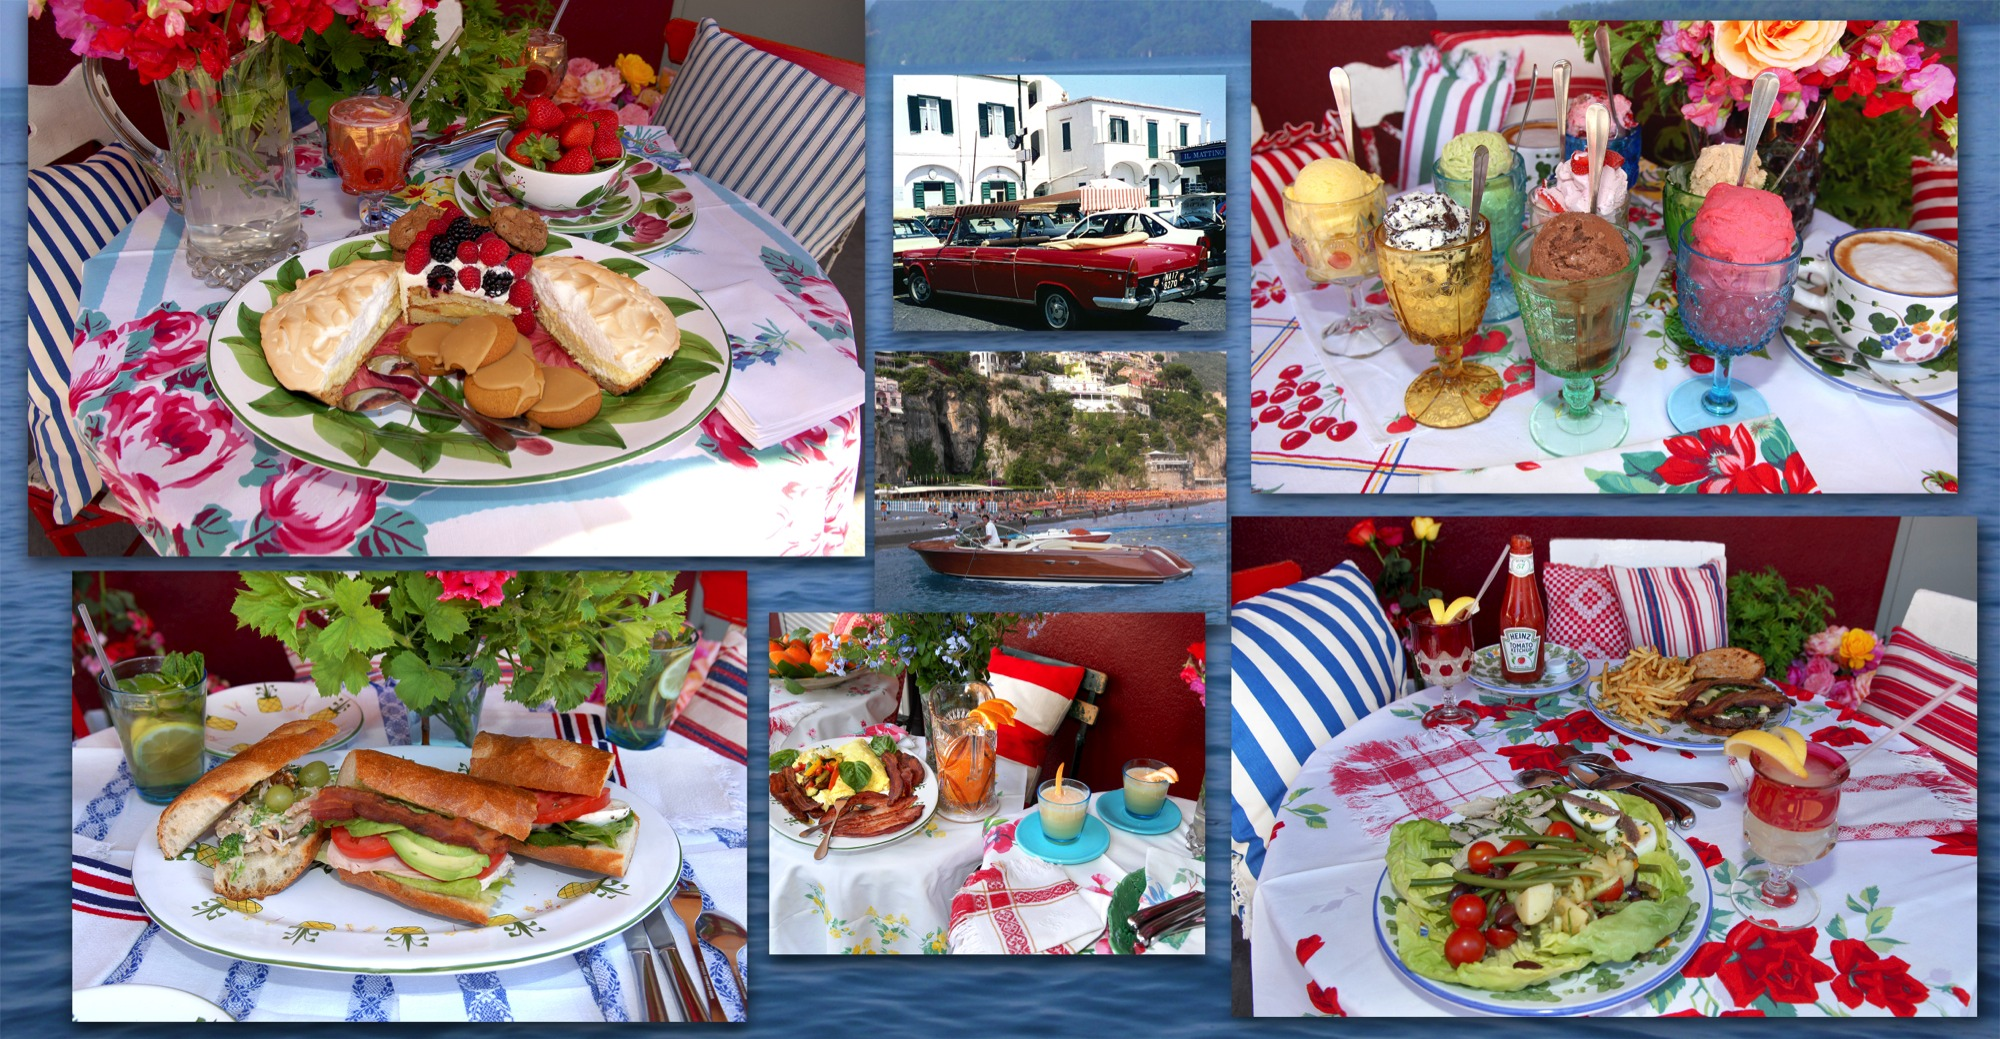 Image collage of table settings, food, drinks and desserts at Dolce Isola